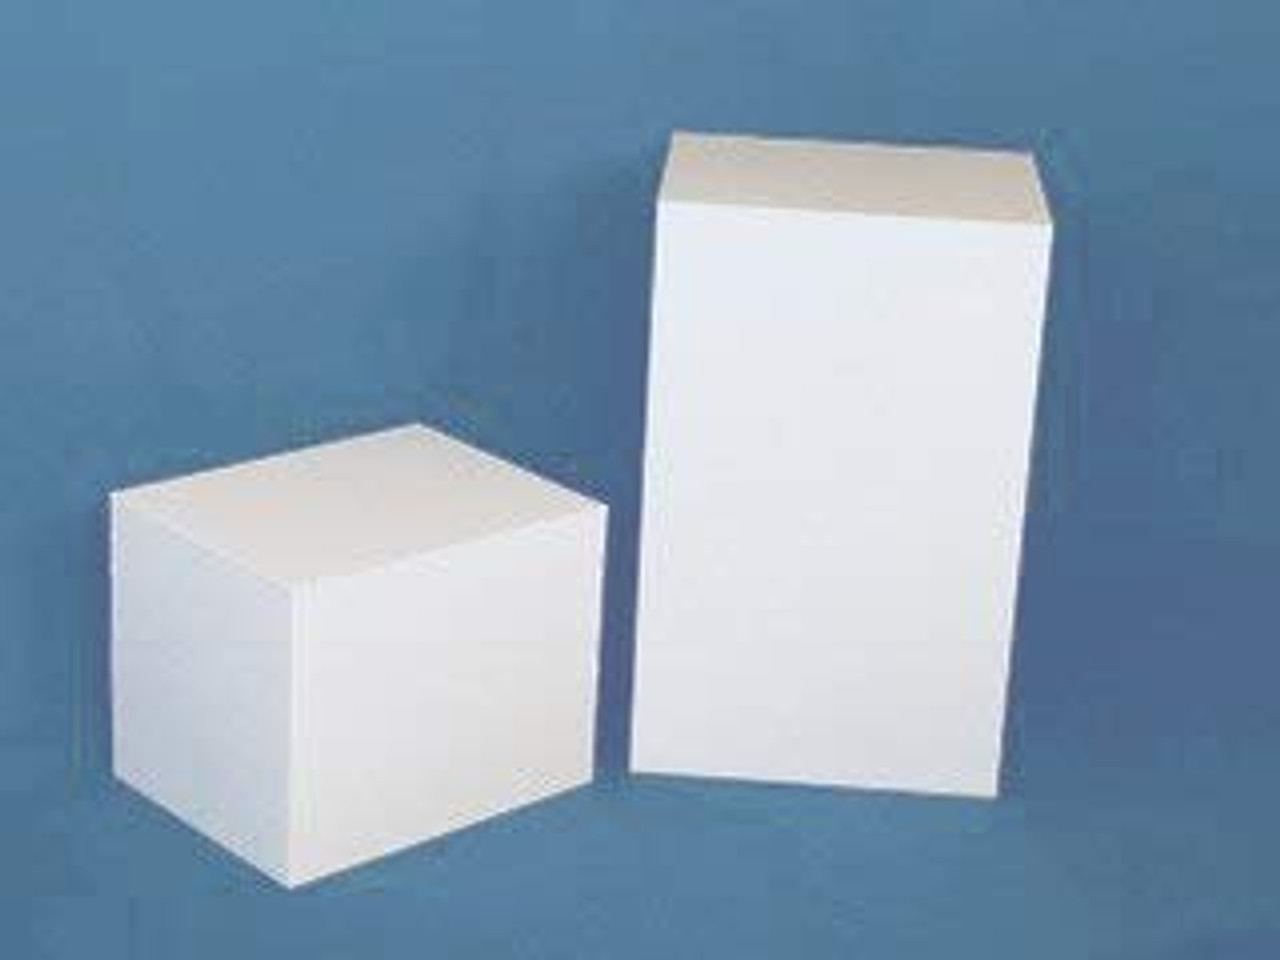 Rectangular Acrylic Display Cube - White, 12 Inch